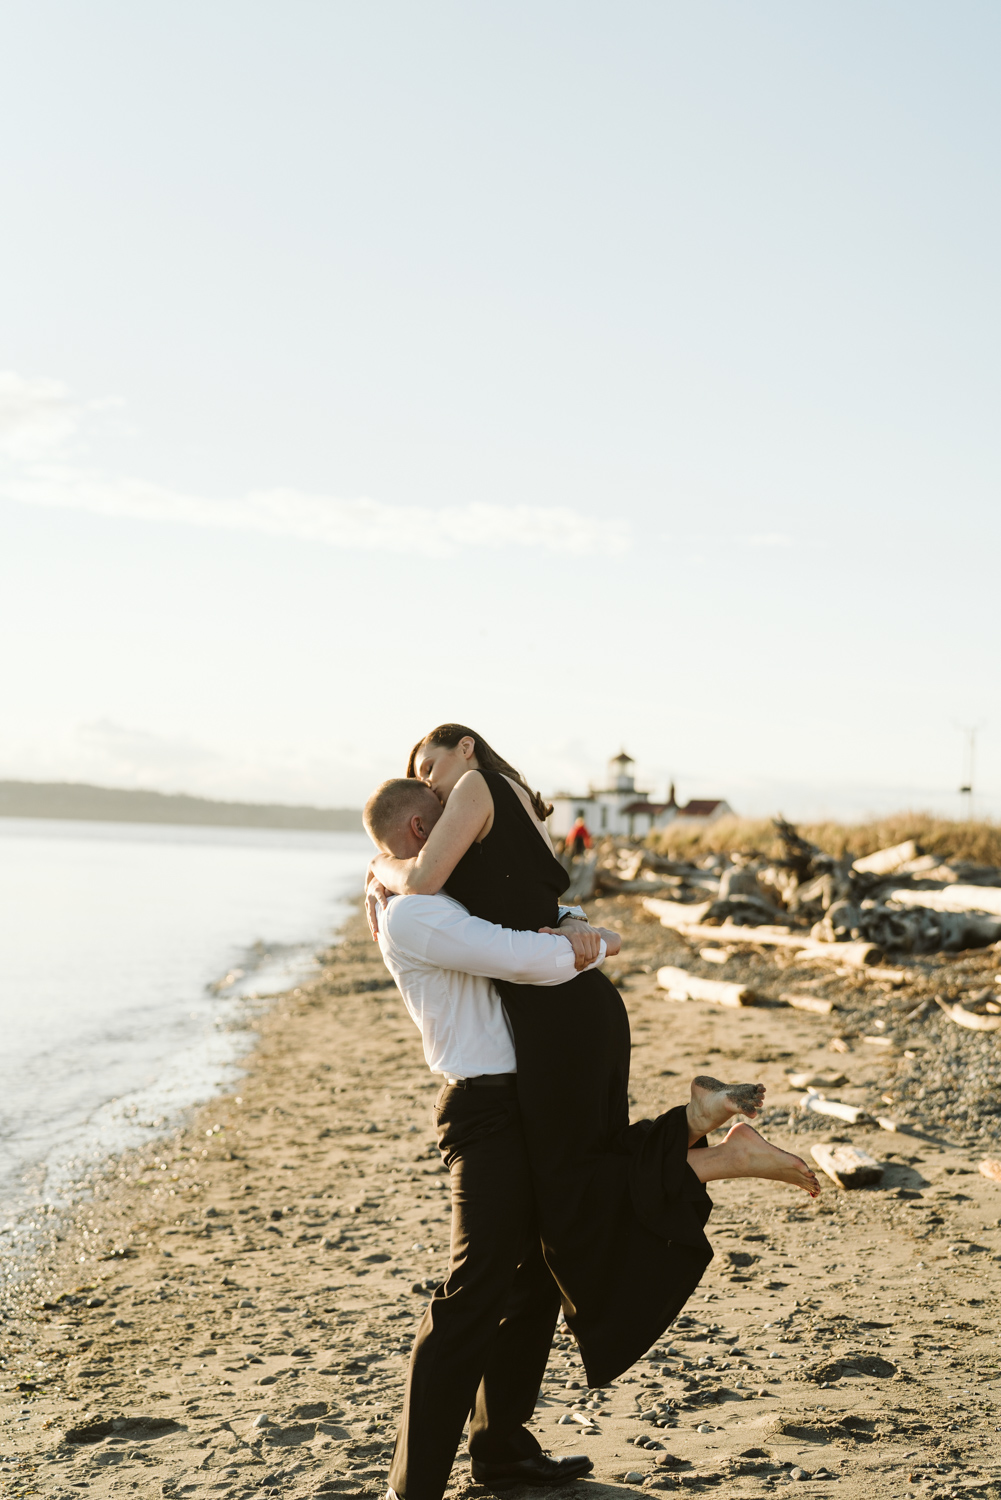 April Yentas Photography - Bonzai & Alex - Engagement Session-63.jpg